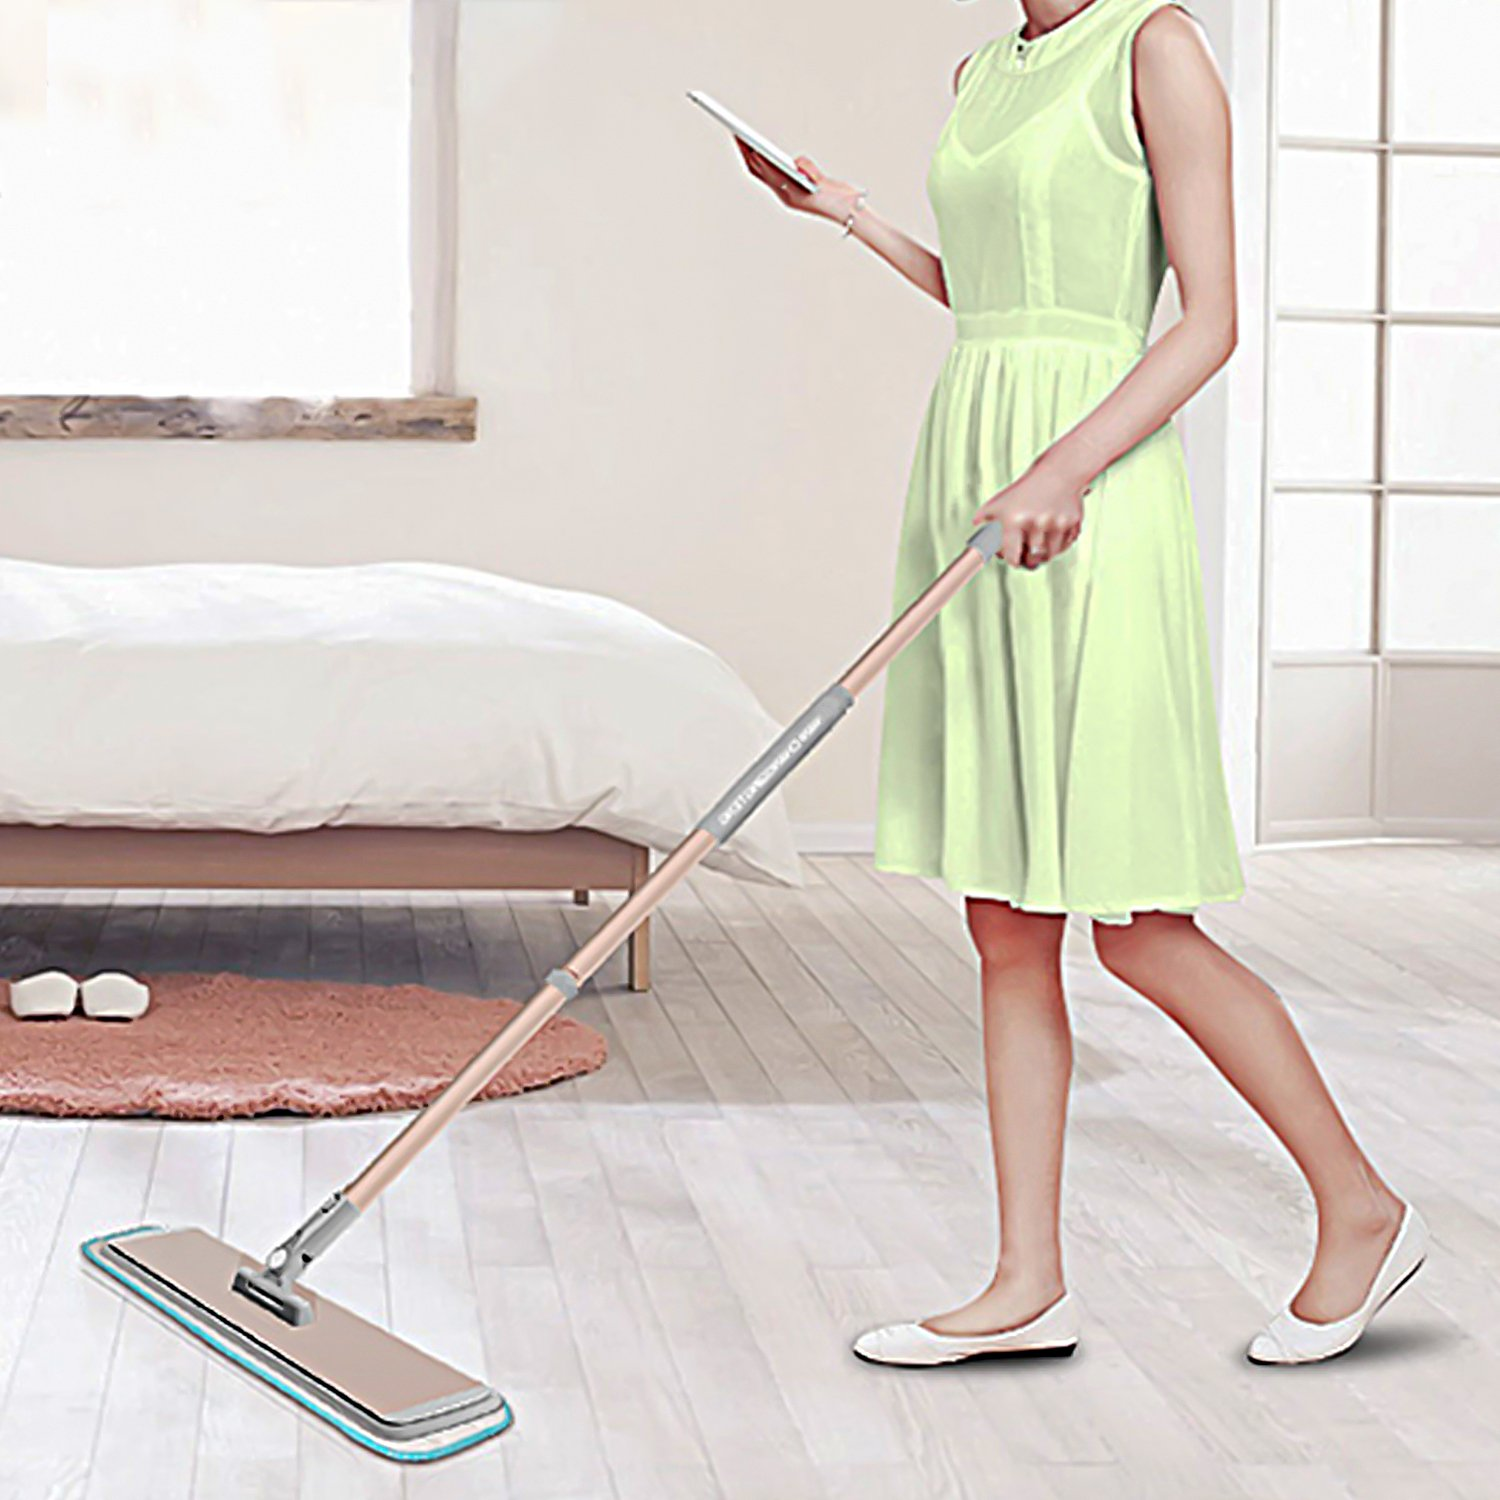 FRMARCH 18'' Professional Microfiber Mop 360 Flat Mop for Floor Cleaning, Wet and Dry Floor Cleaning Mops for Hardwood, Wood, Tile, Walls,Commercial Grade Metal Handle/Head,All in 3 mop pad by FRMARCH (Image #7)